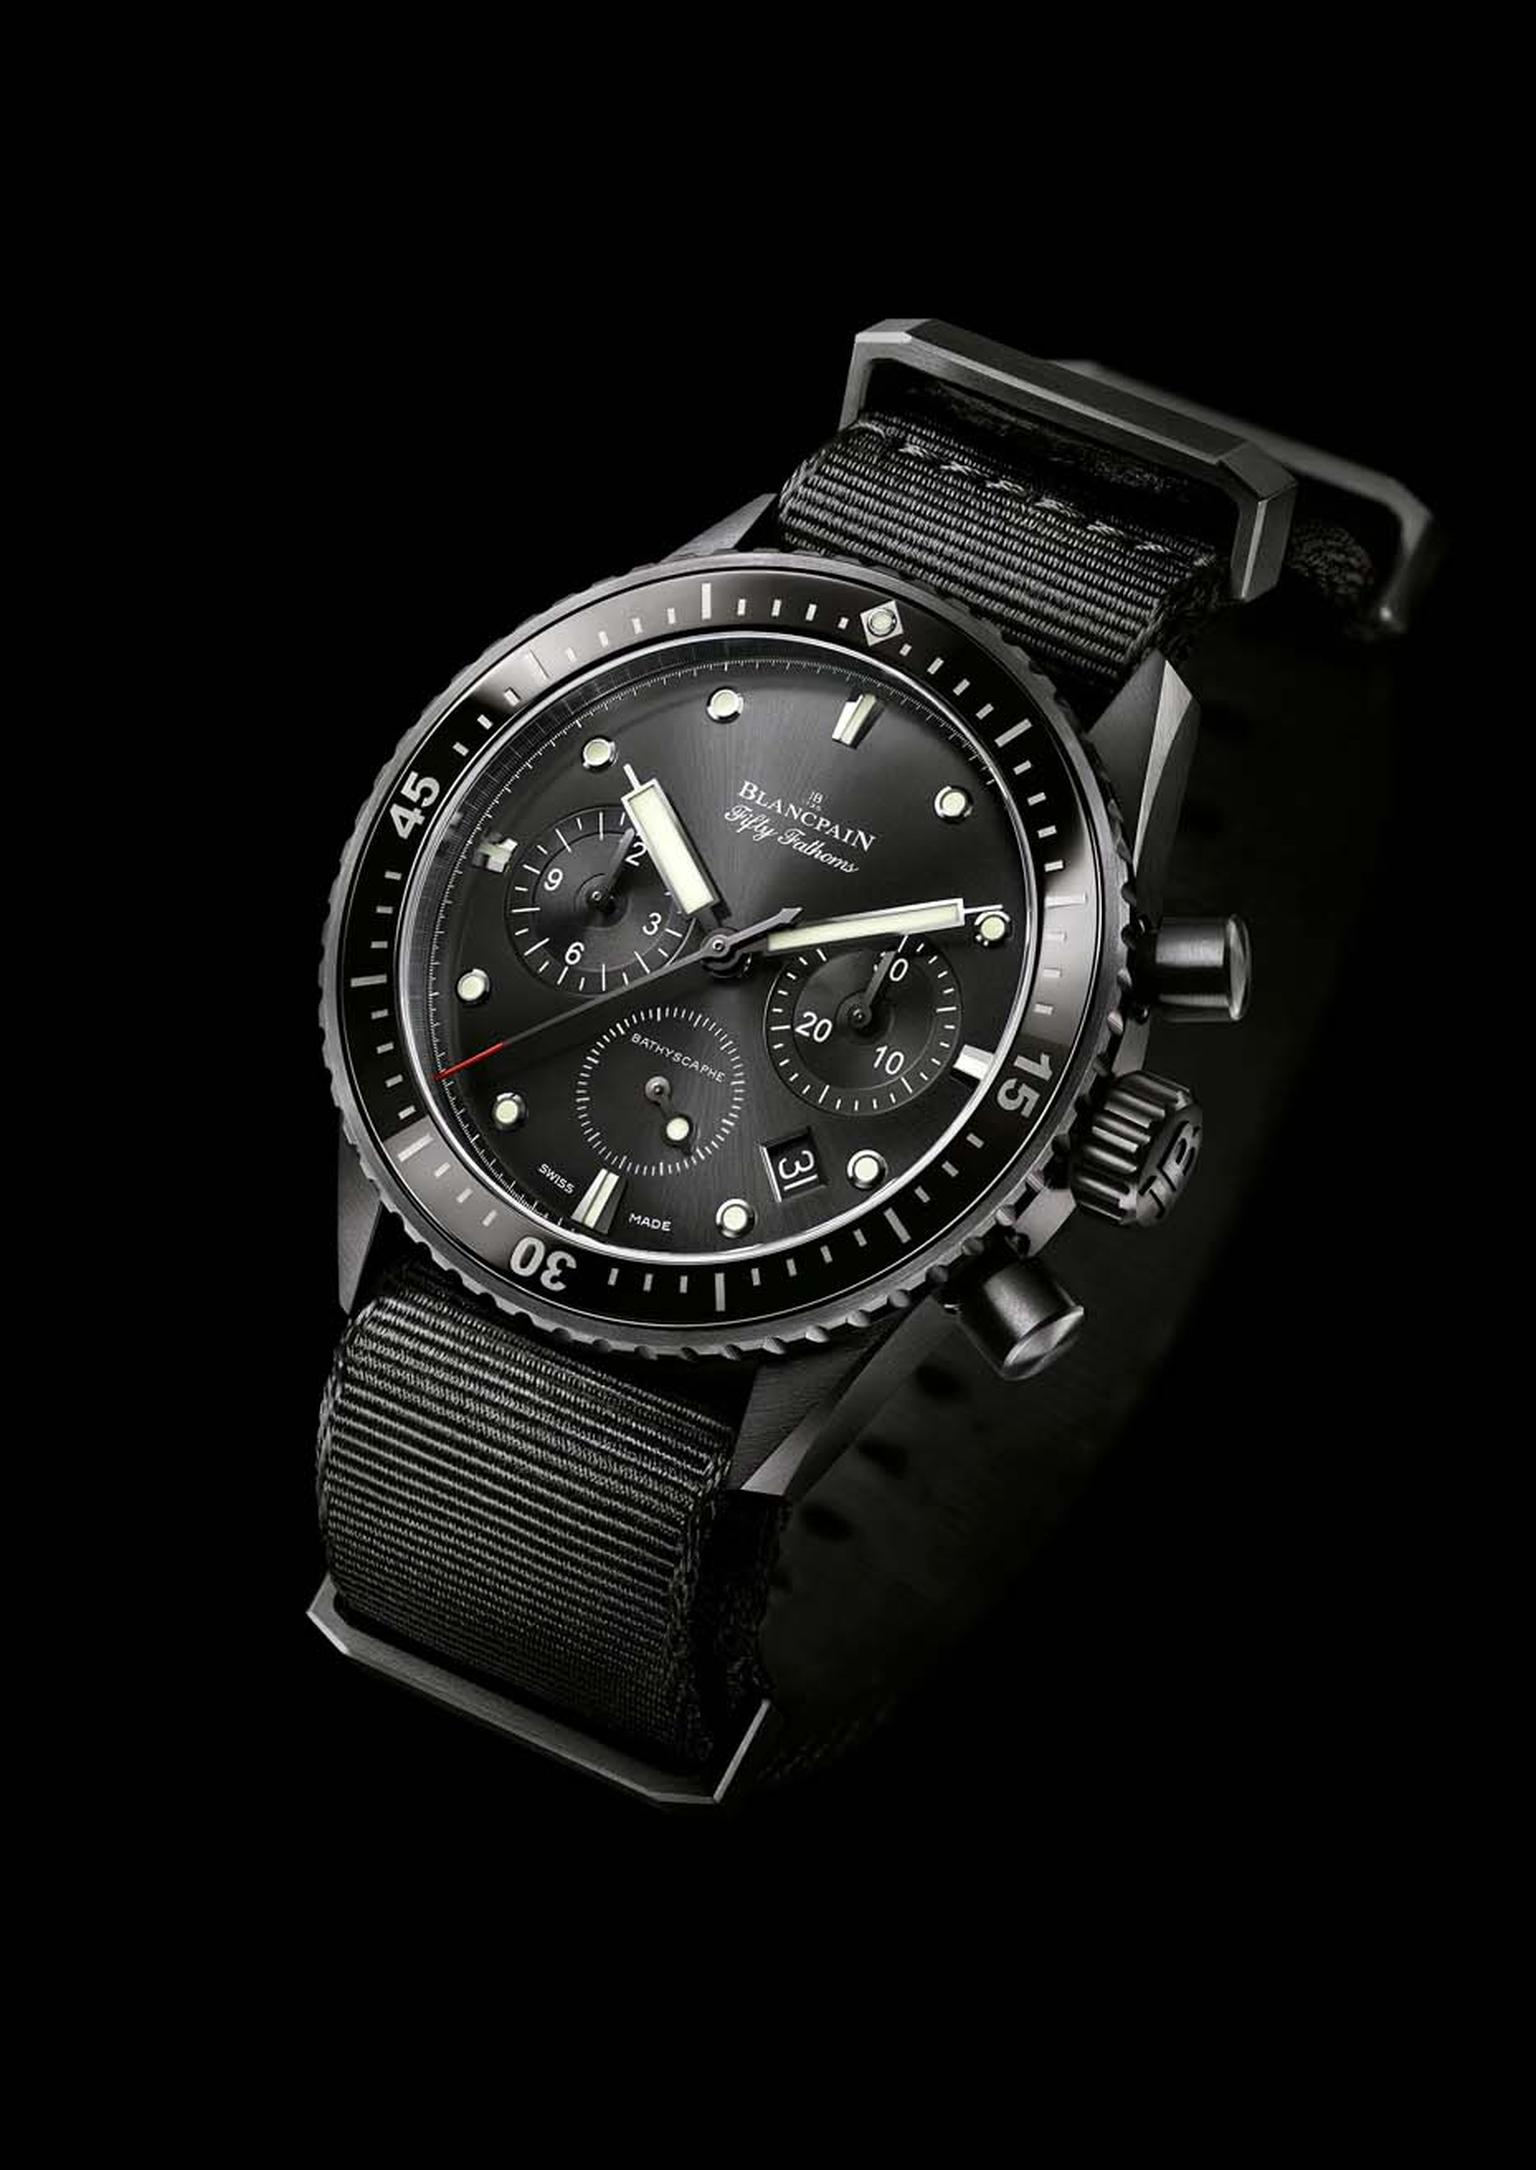 The Blancpain Fifty Fathoms Bathyscaphe was declined this year with a sophisticated flyback chronograph. The 43mm brushed black ceramic model, which offers superior scratch-resistance, is capable of braving depths of 300 metres.